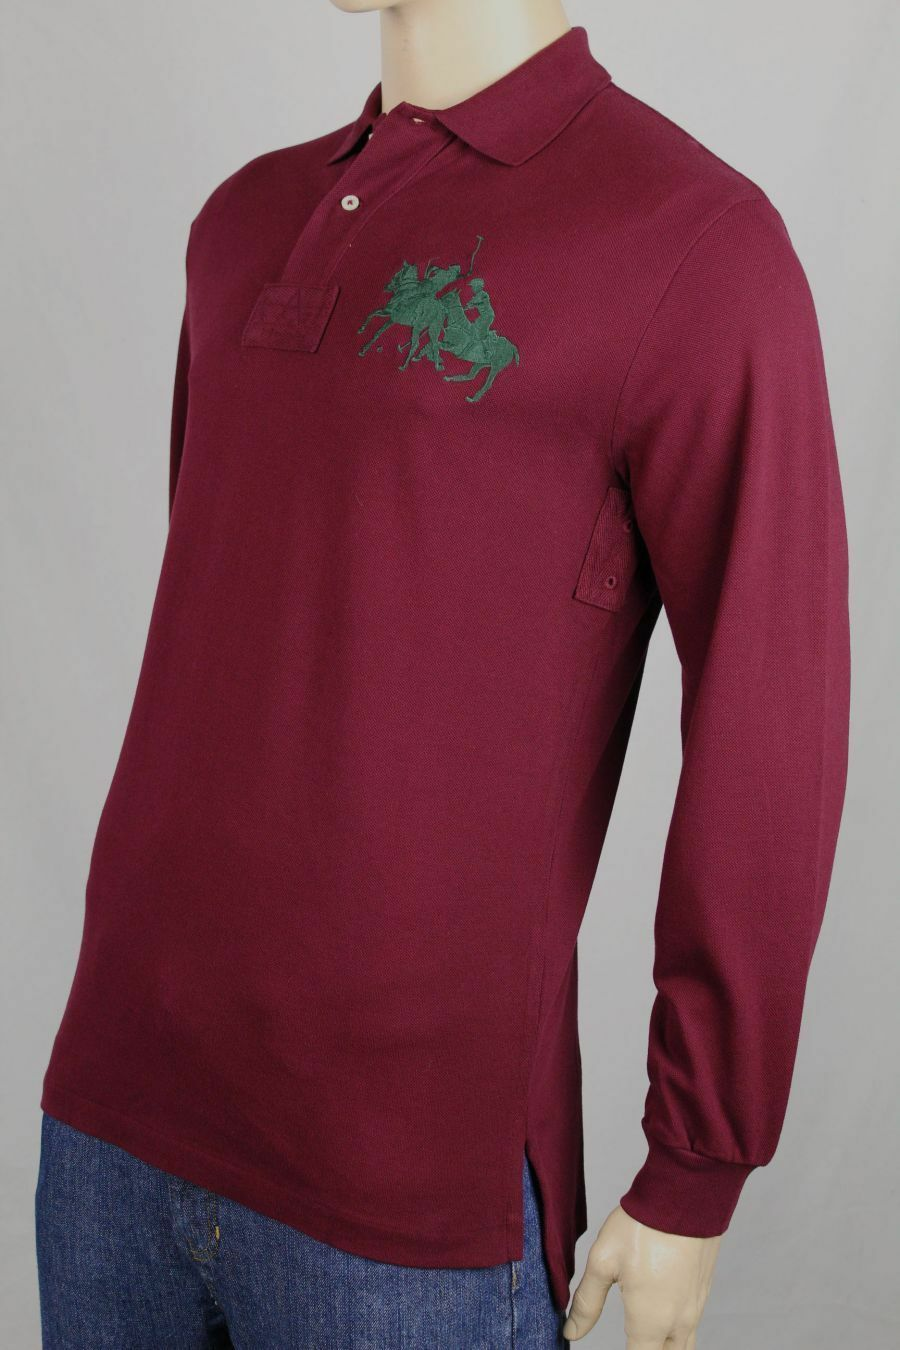 Ralph Lauren Small S Burgundy Big Green Pony Match Classic Fit POLO NWT